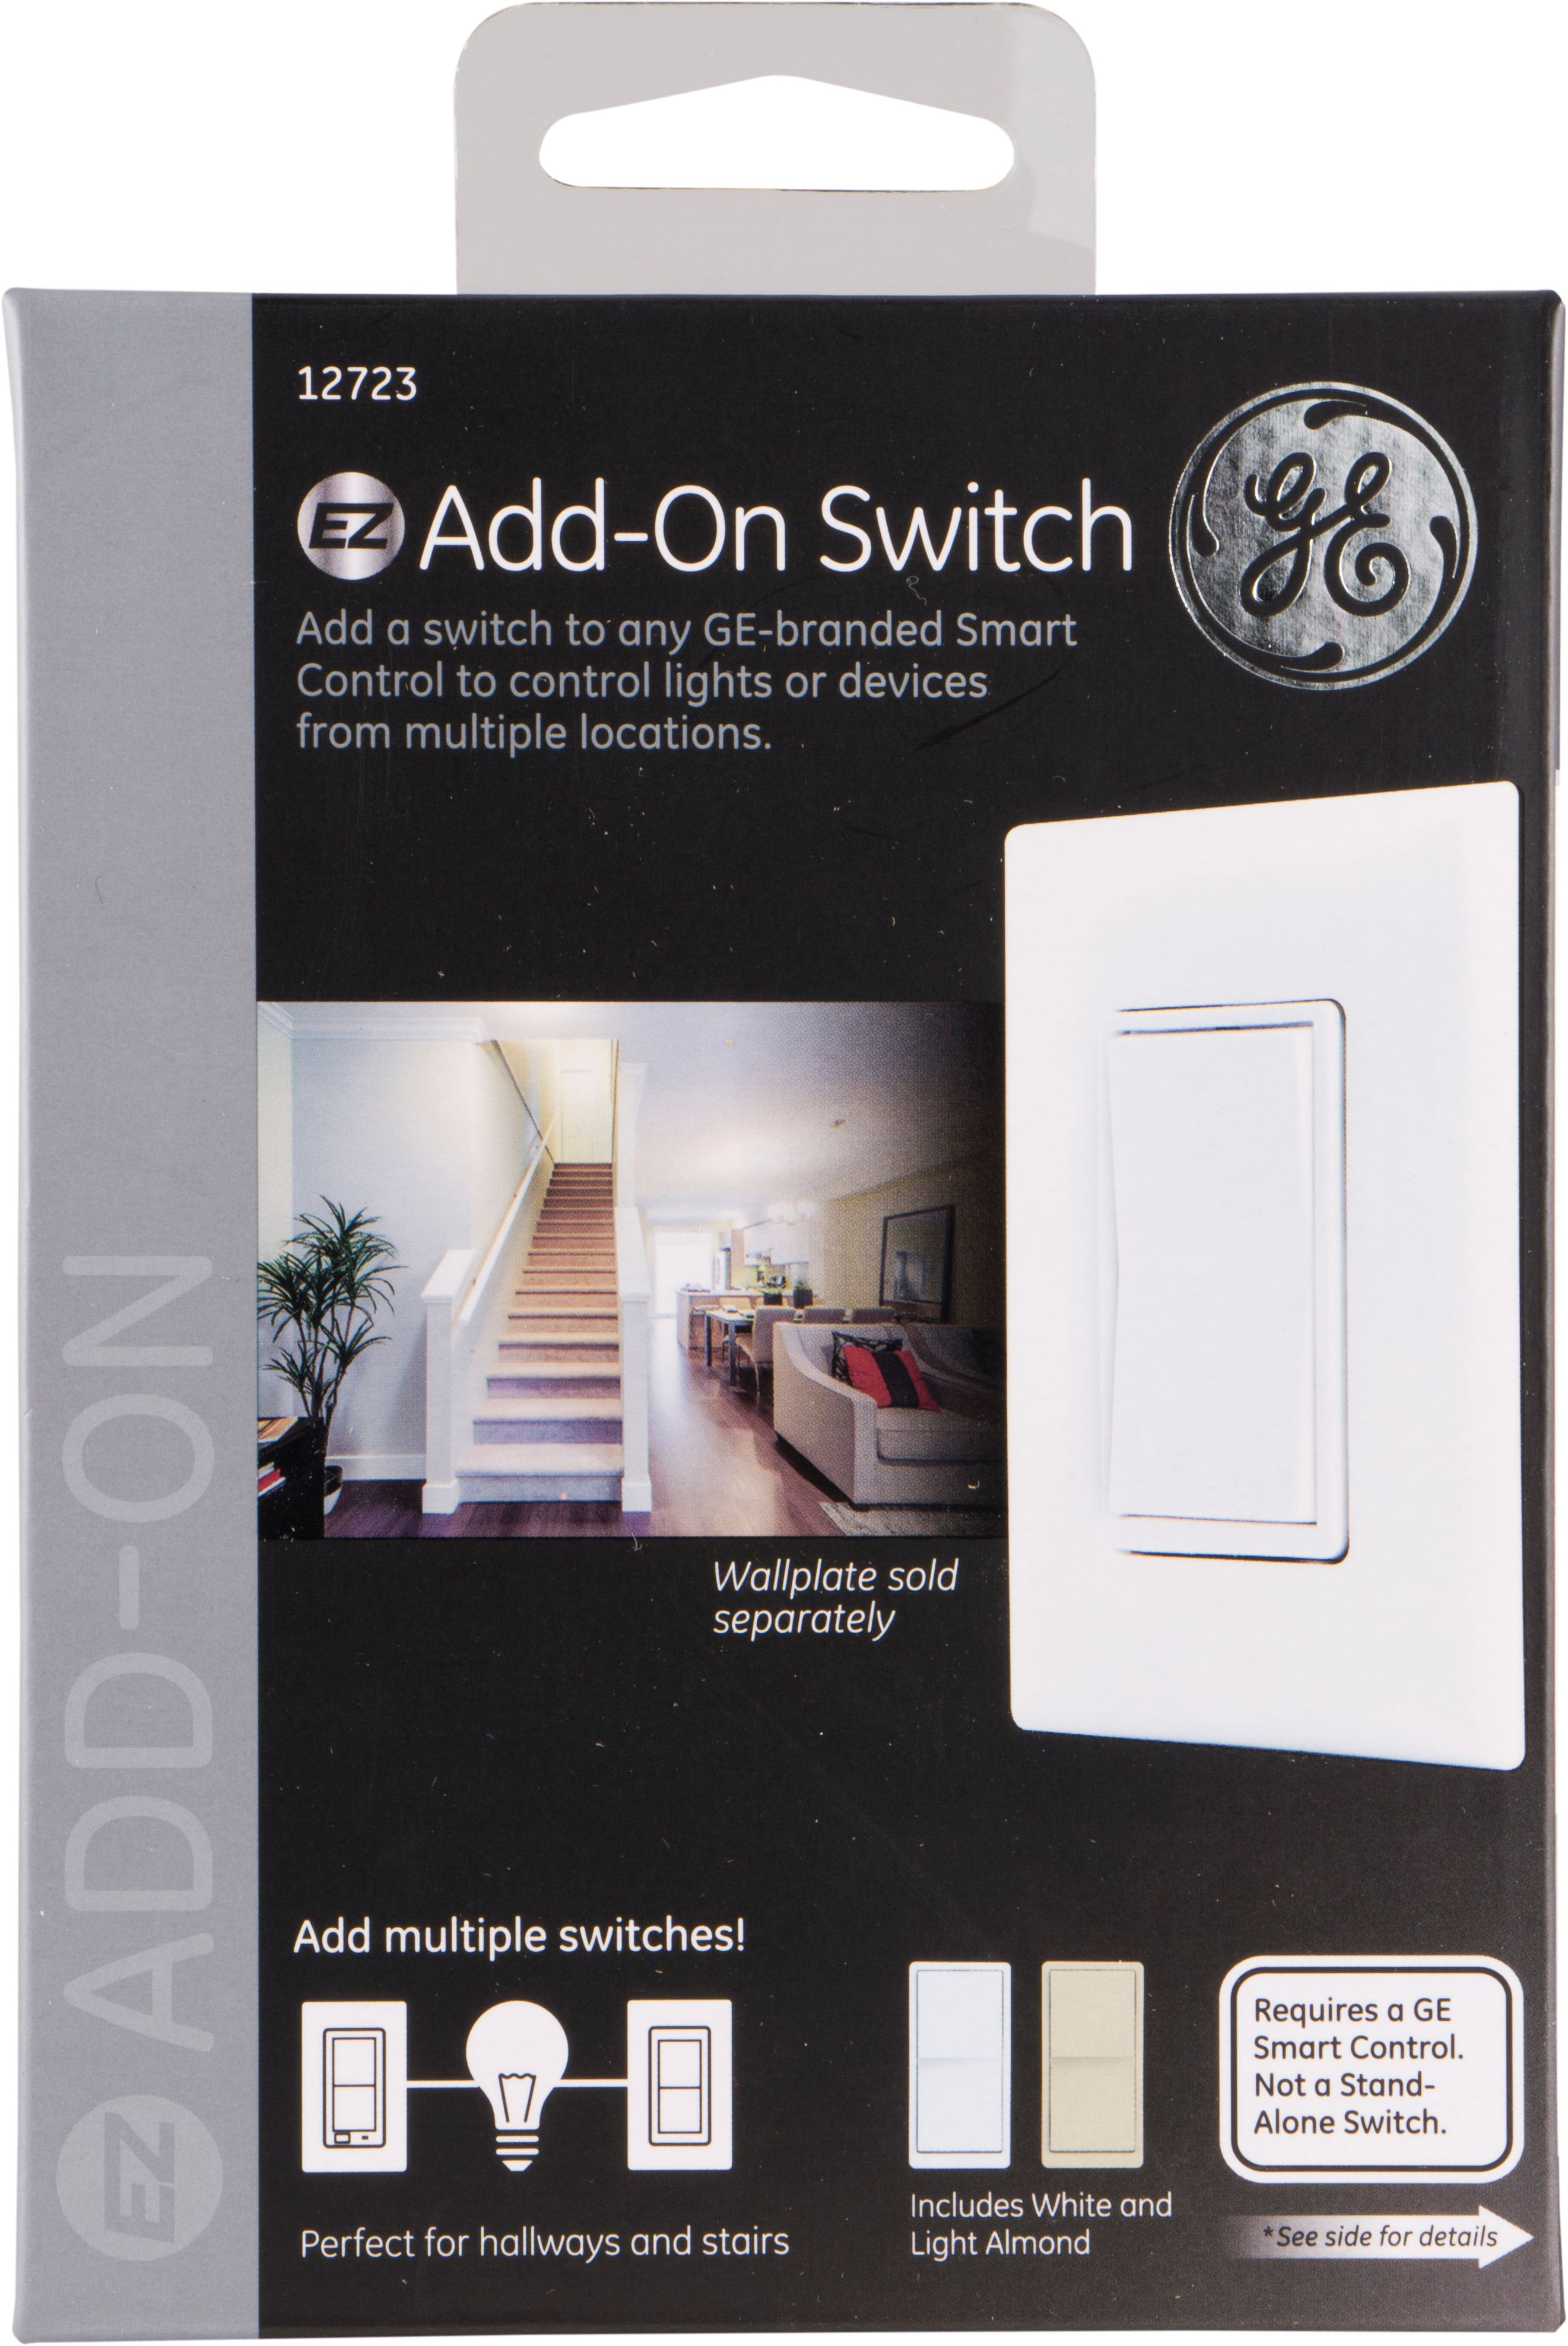 GE Z-Wave In-Wall Smart Add-On Switch, Hub Required - Walmart.com